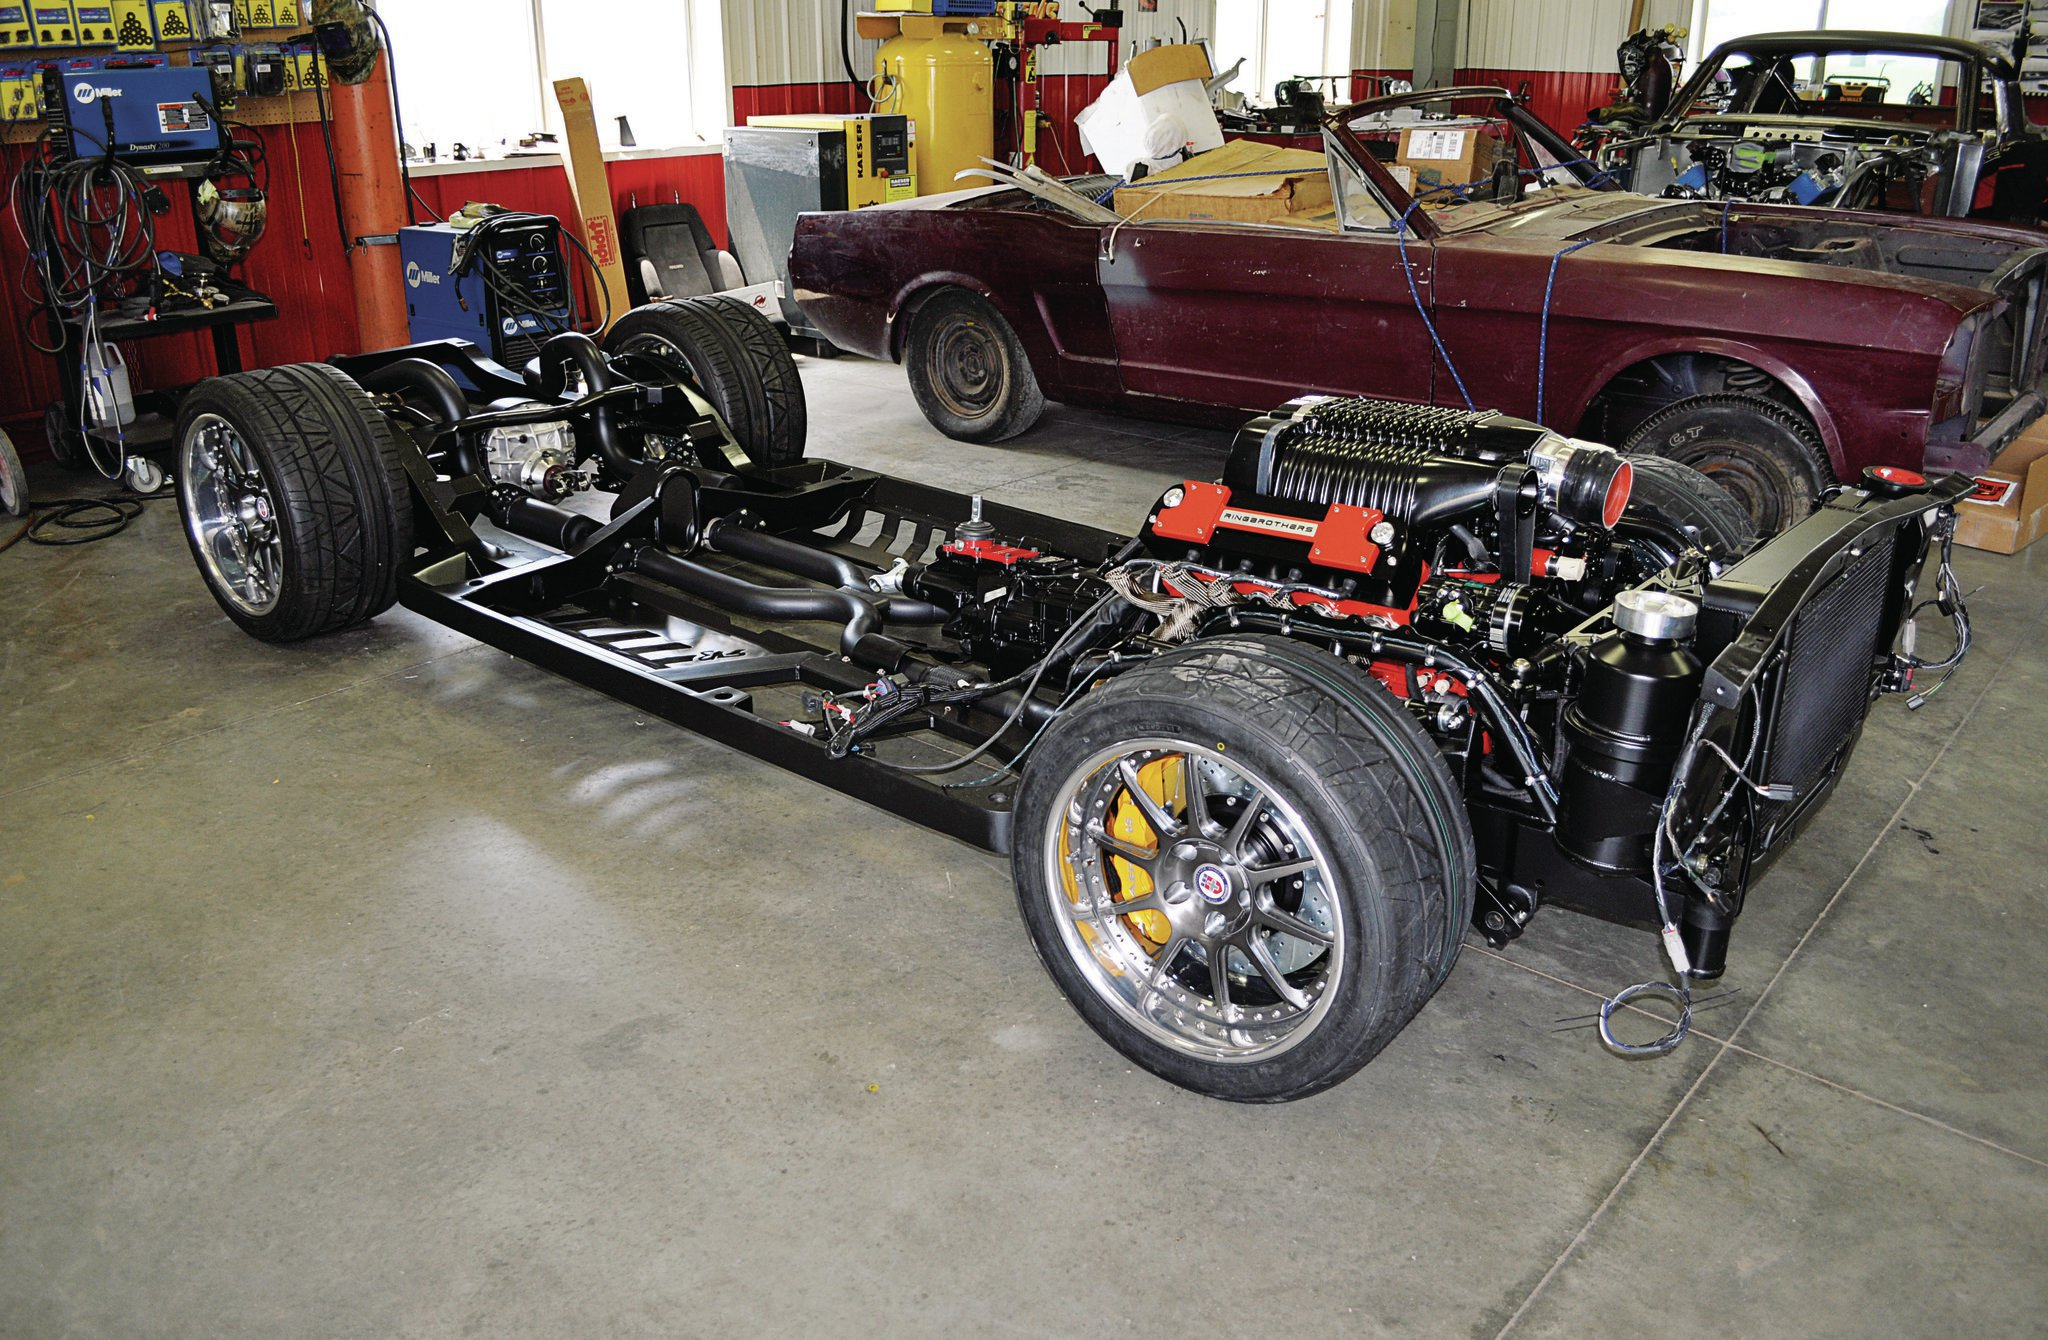 While the body has been undergoing extensive panel fitment and general bodywork, the chassis has been painted, assembled, and detailed. The Roadster Shop chassis features 2005–2013 Corvette C6 front suspension components, AFCO coilovers, and Baer brakes.